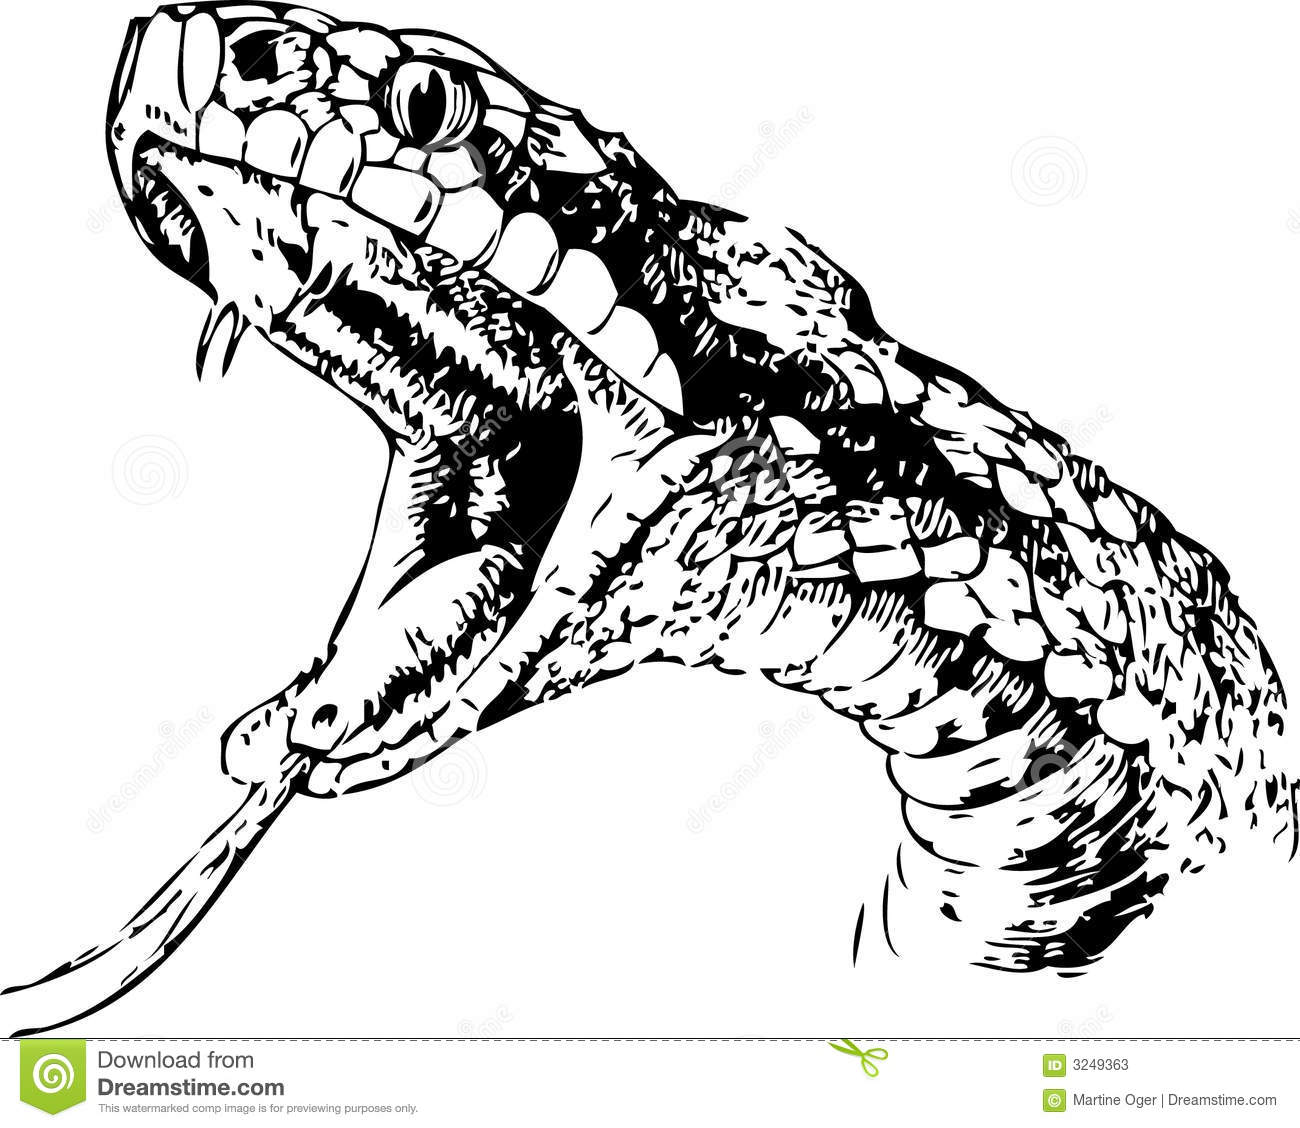 Snake Sketch Stock Photos Image 3249363